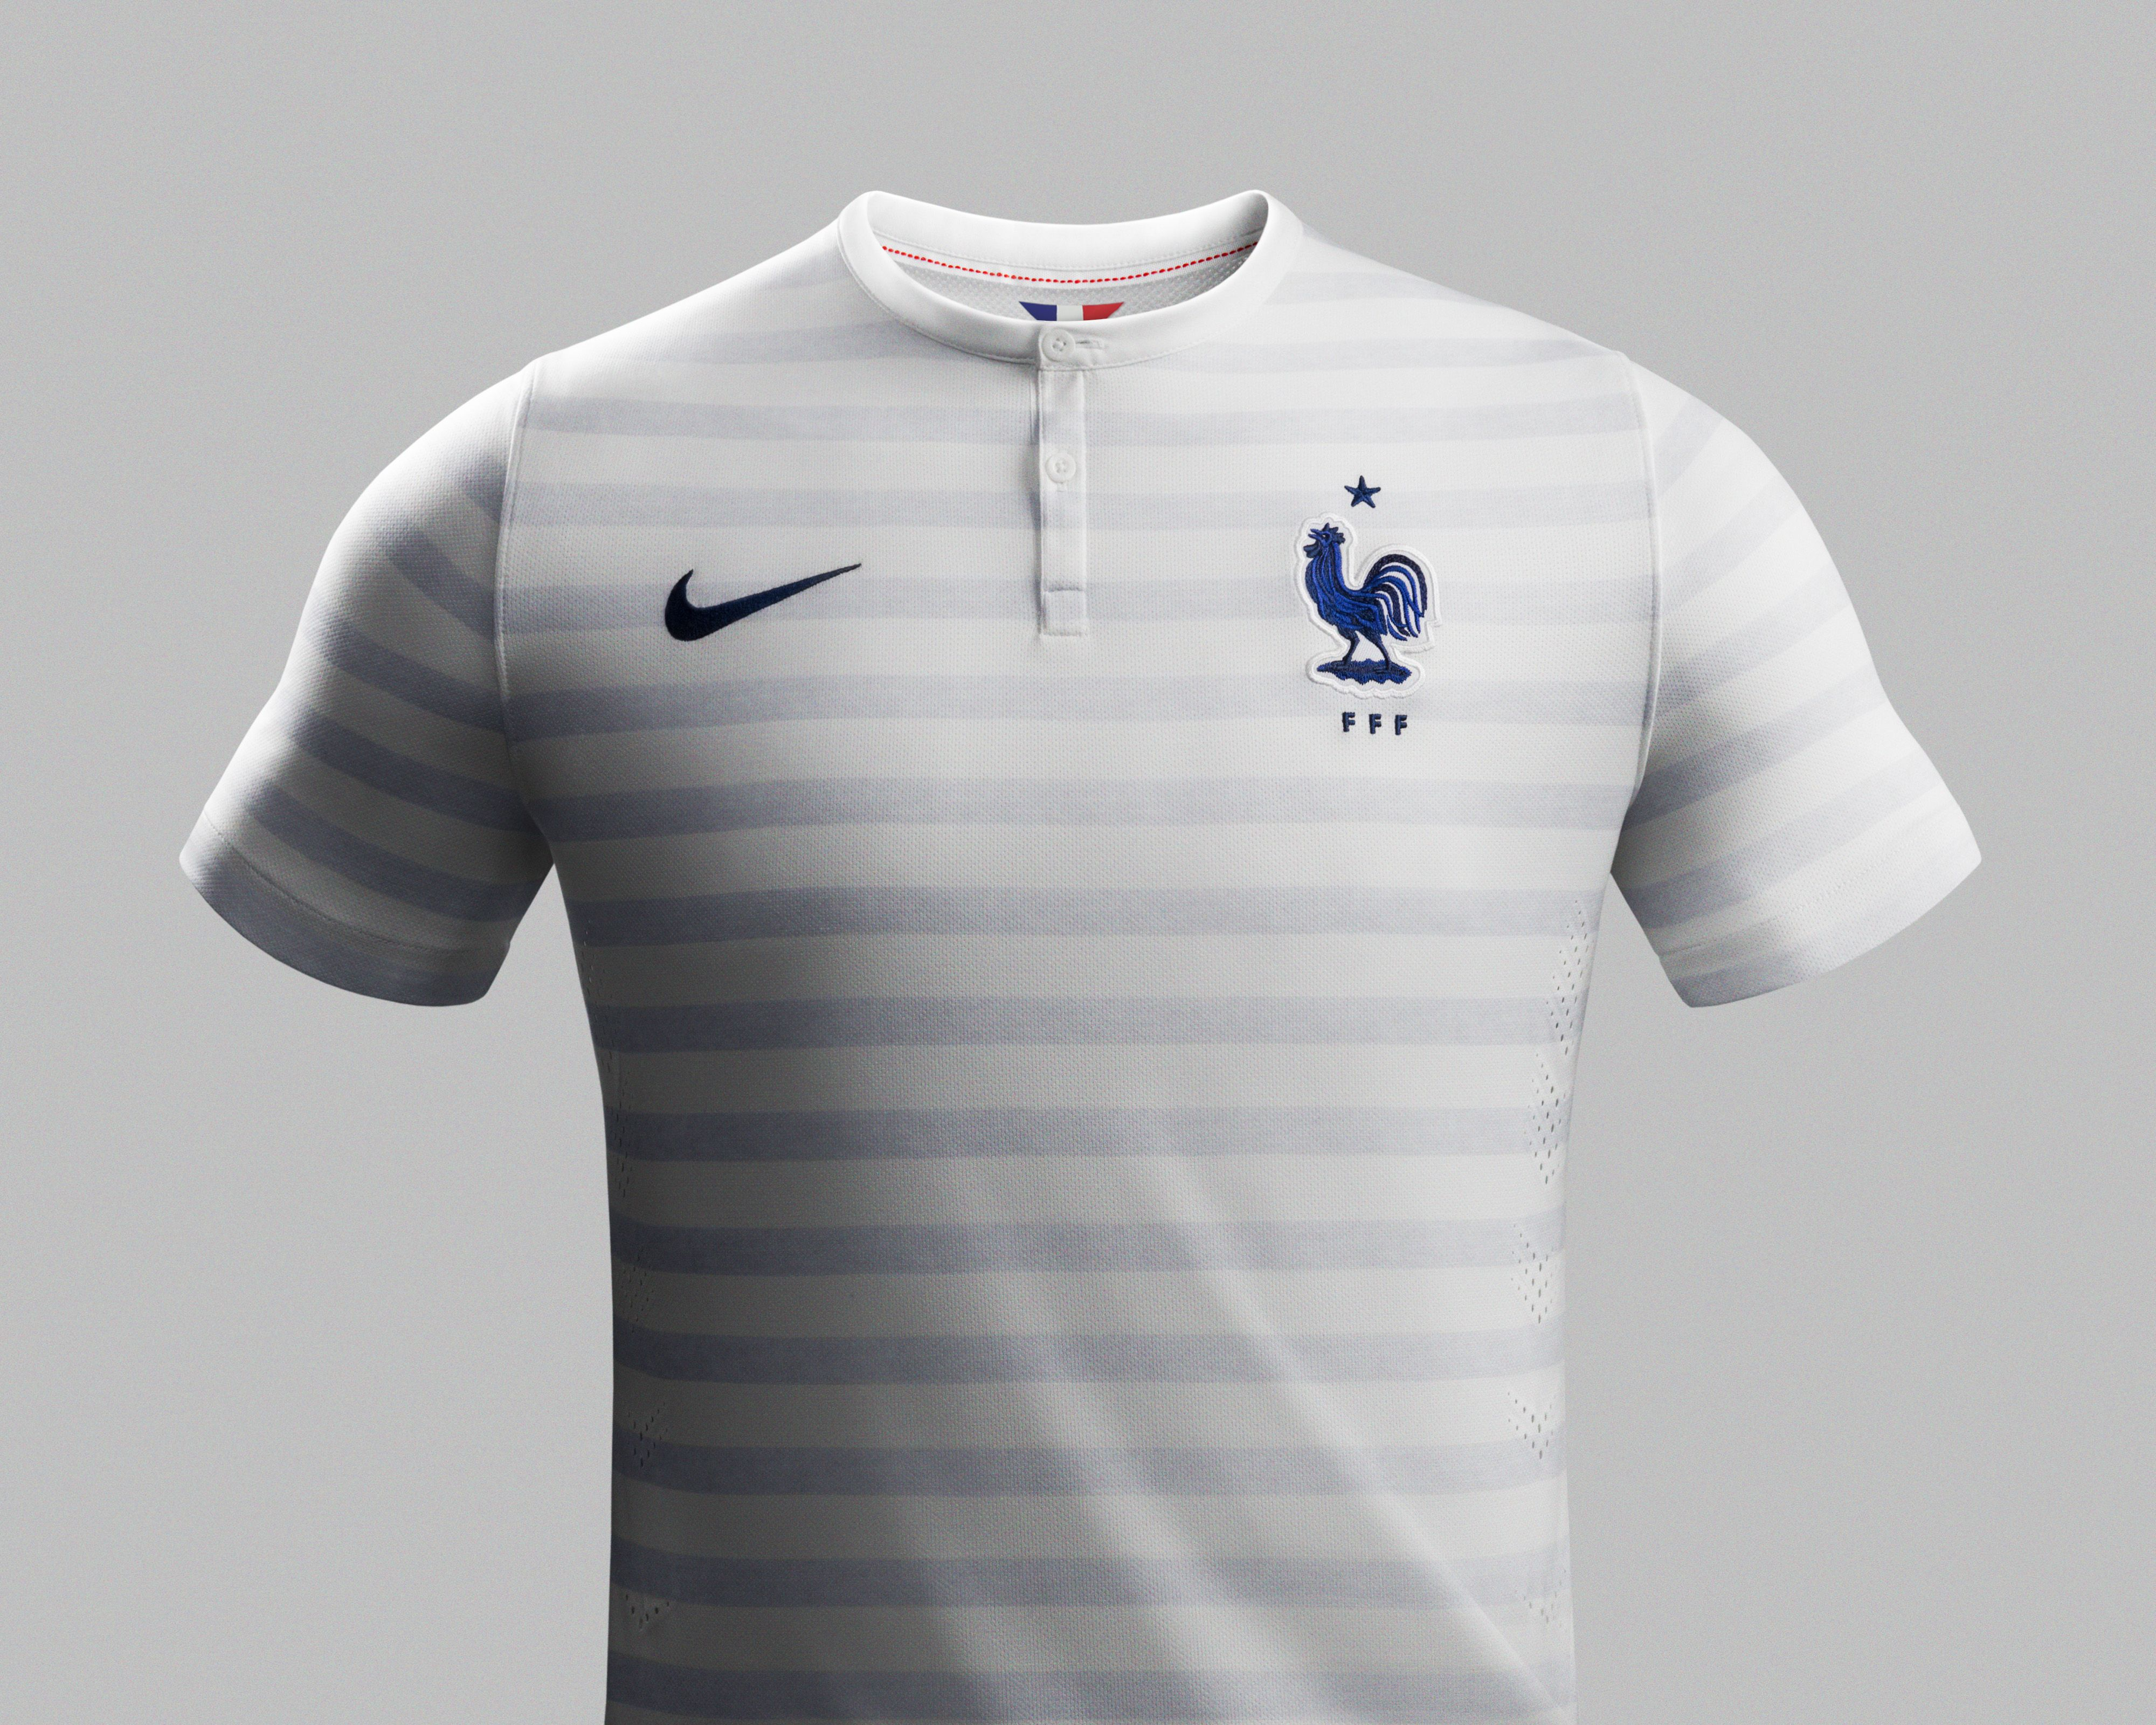 quality design 2e119 9d0c4 France Away Kit for World Cup 2014 #worldcup #brazil2014 ...